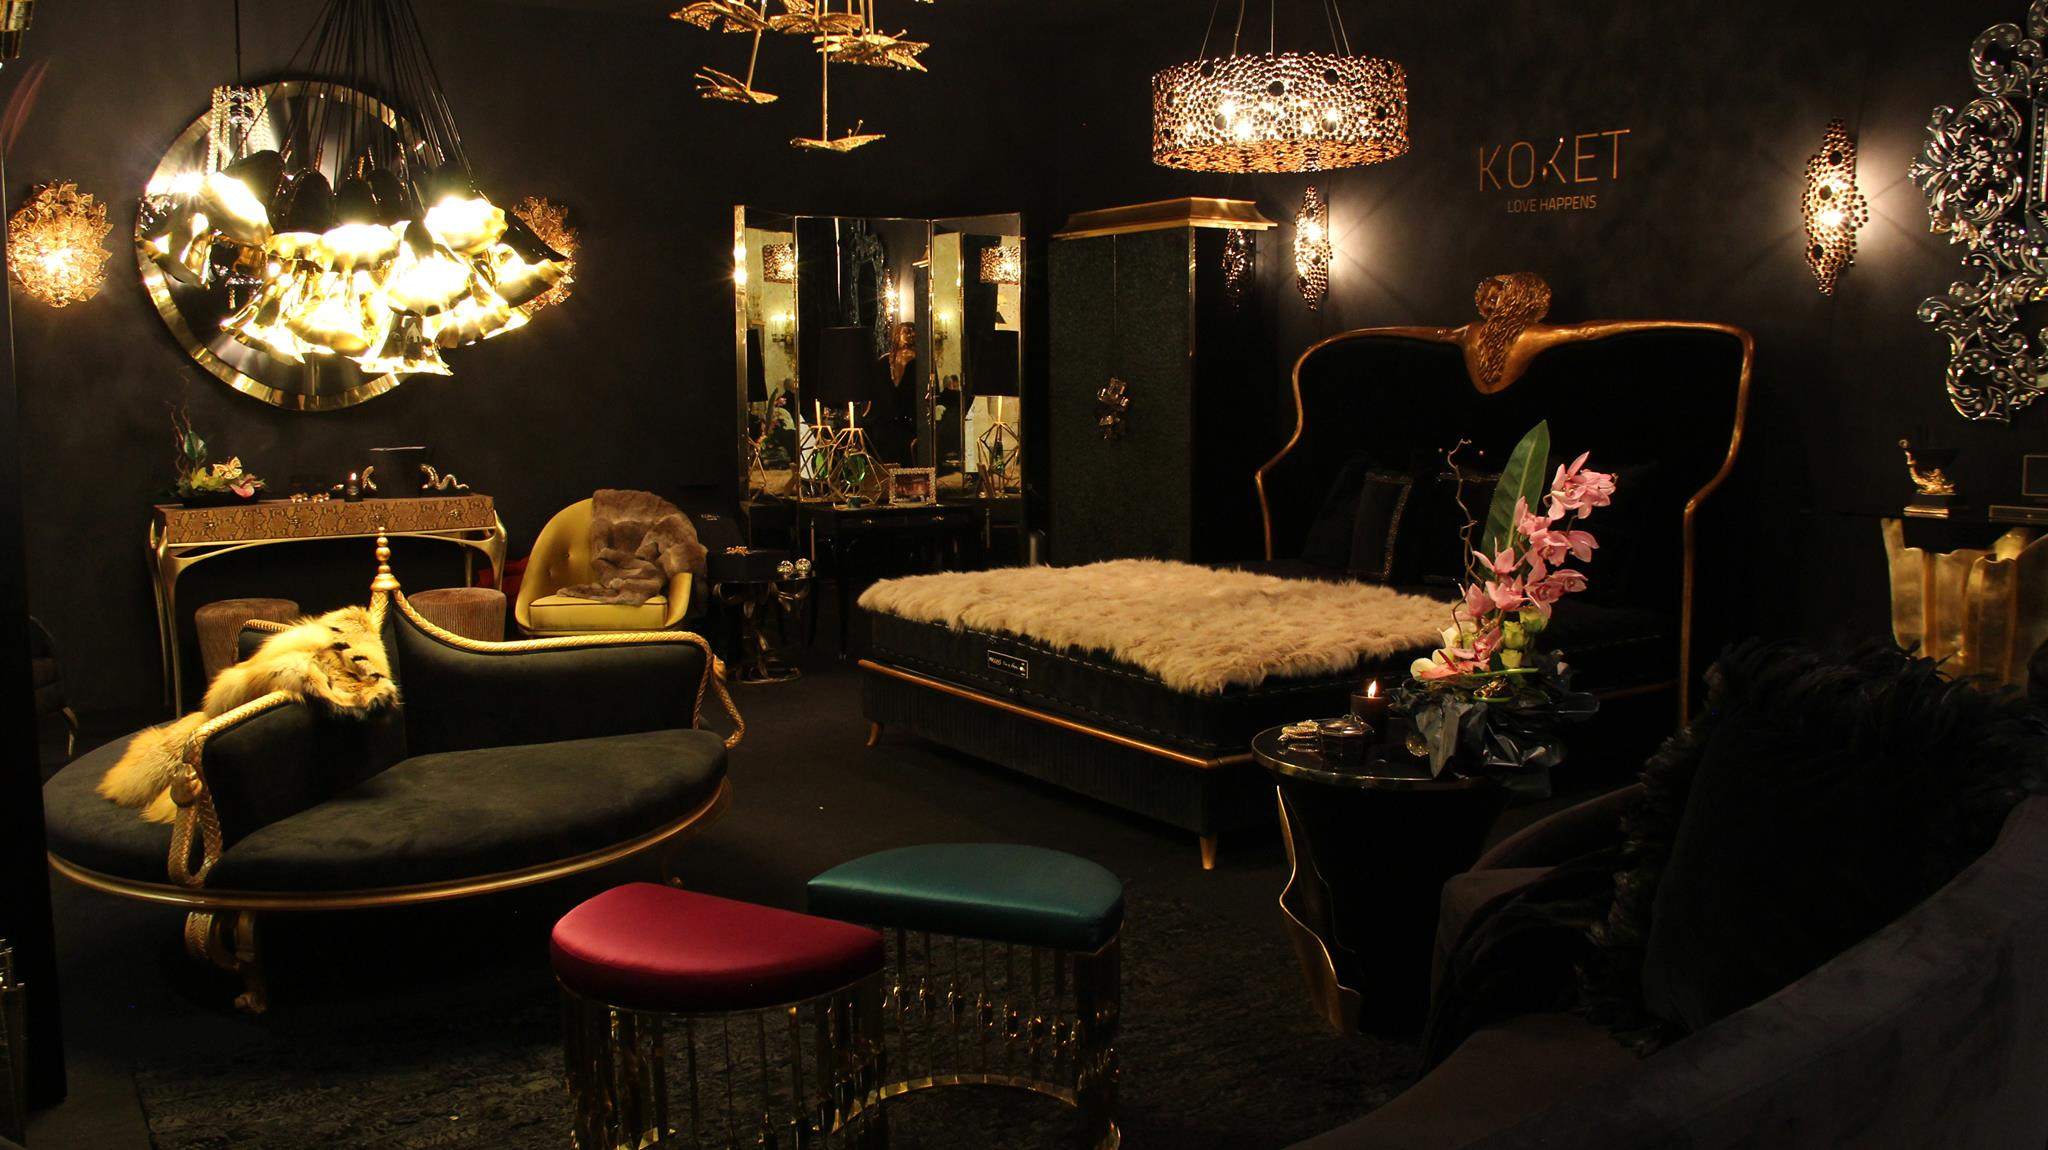 Interview with Janet Morais the Mother of KOKET Interior Design